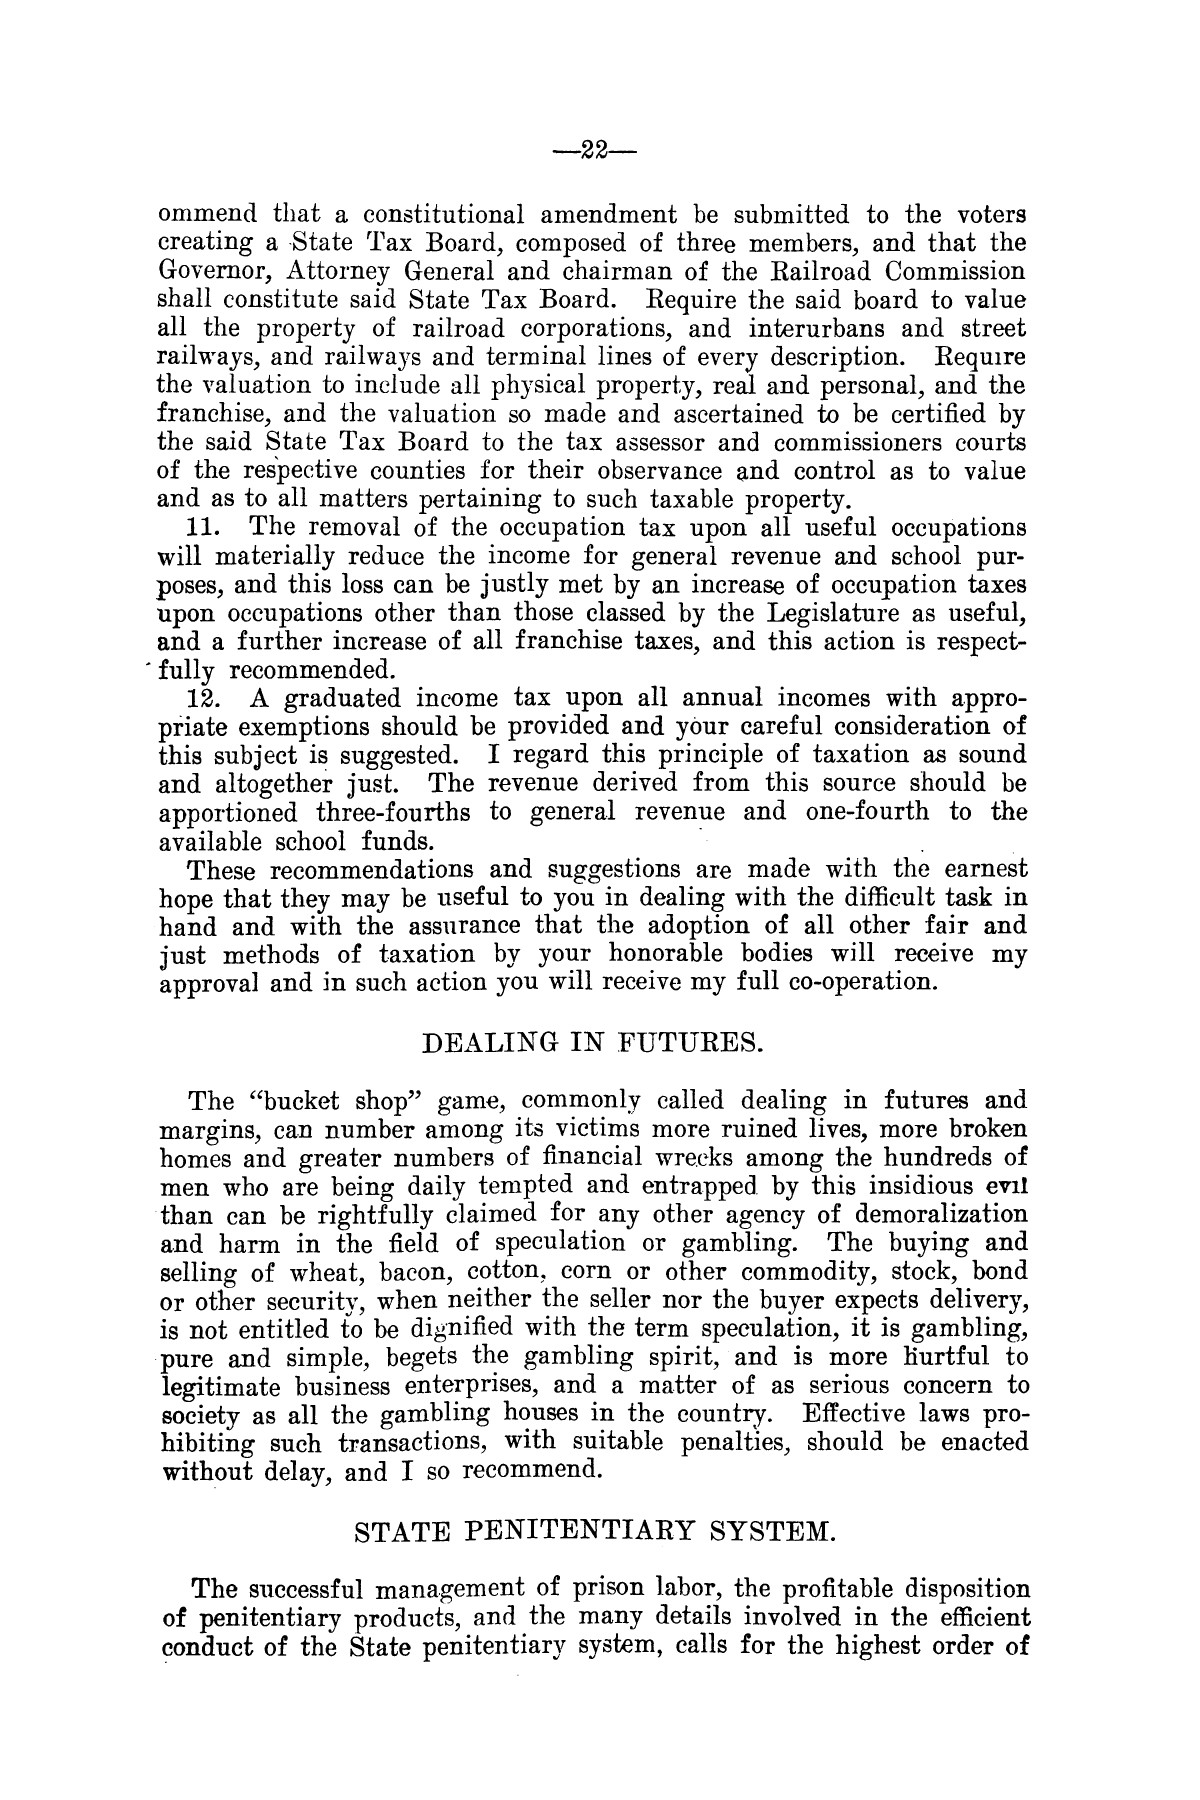 Message of Governor T.M. Campbell to the thirtieth legislature of Texas, to which is appended the State Democratic Platform adopted at Dallas, Texas, August 13, 1906.                                                                                                      [Sequence #]: 22 of 27